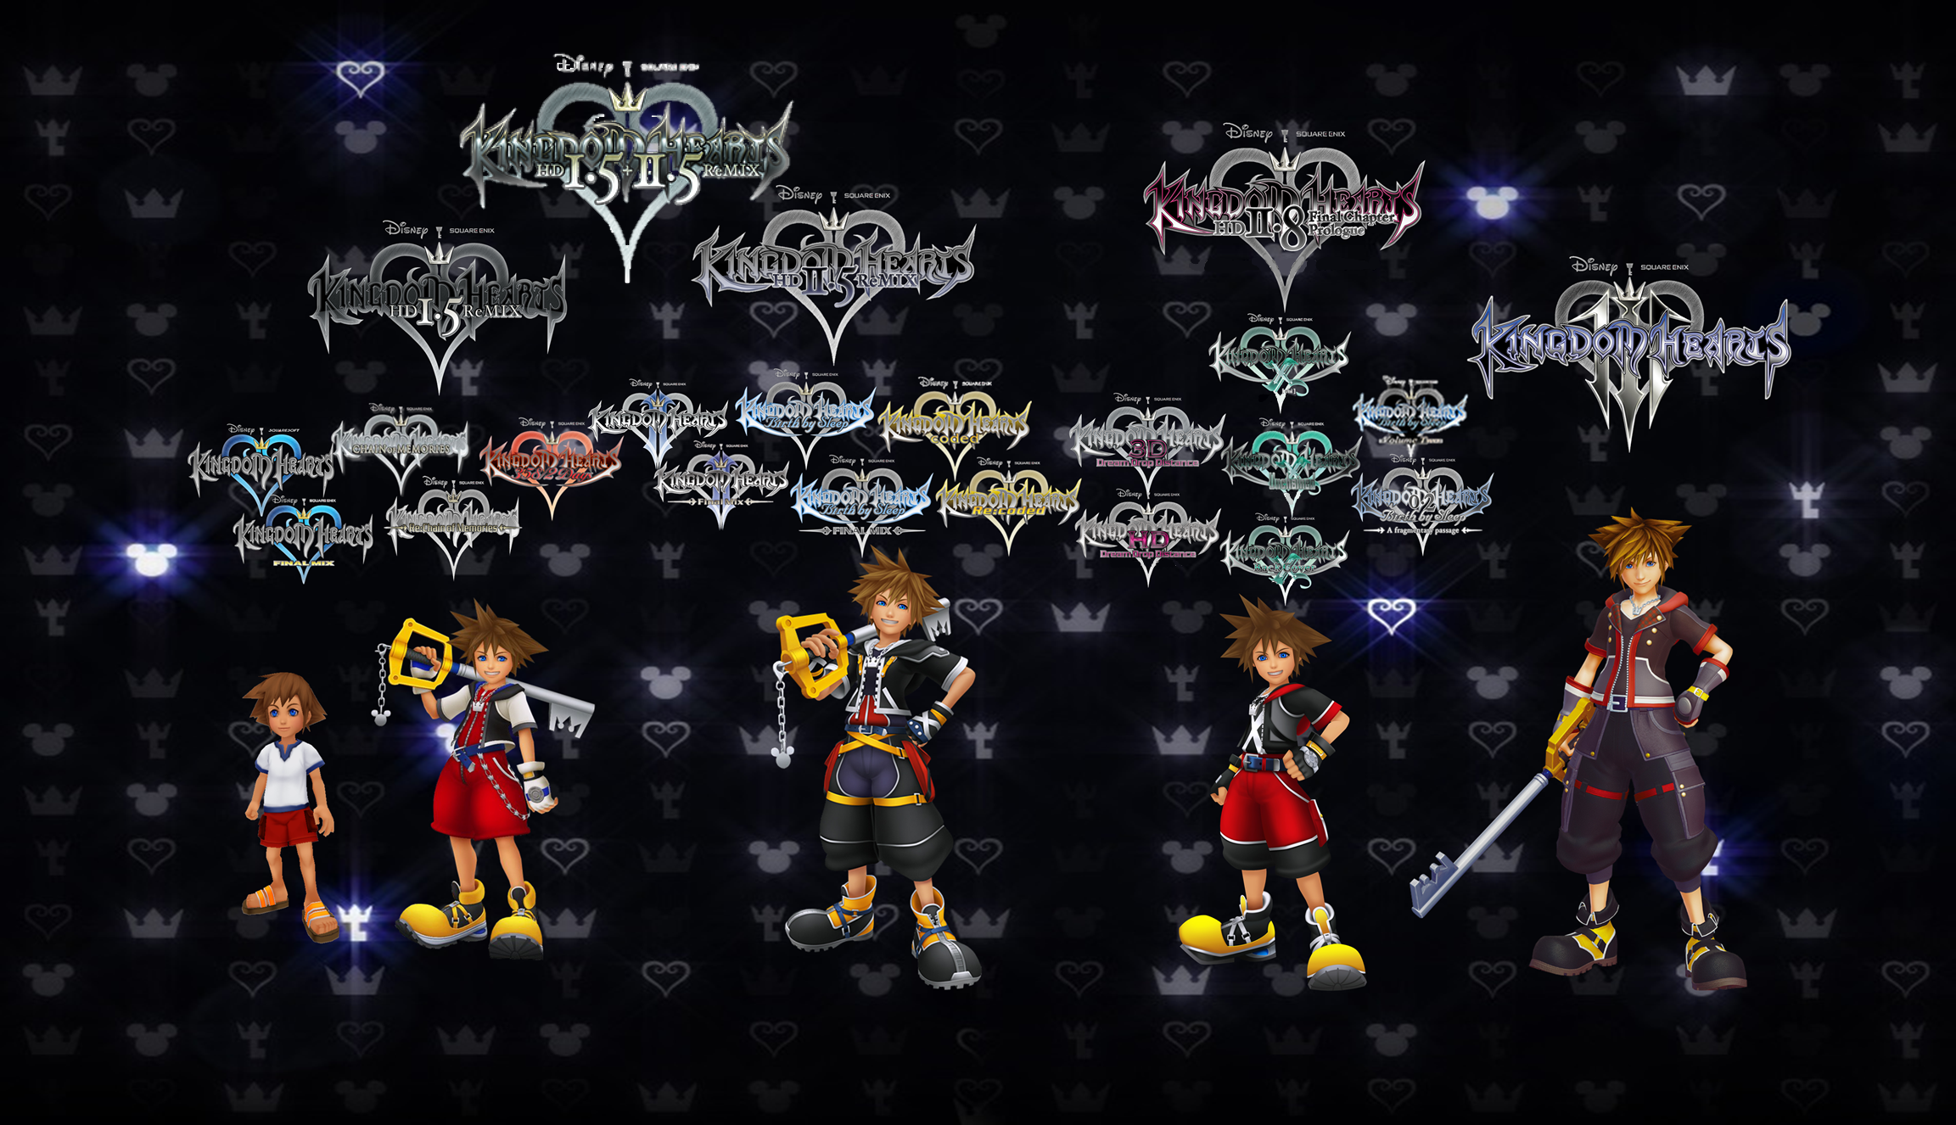 Order to Play Kingdom Hearts Games - Samantha Lienhard